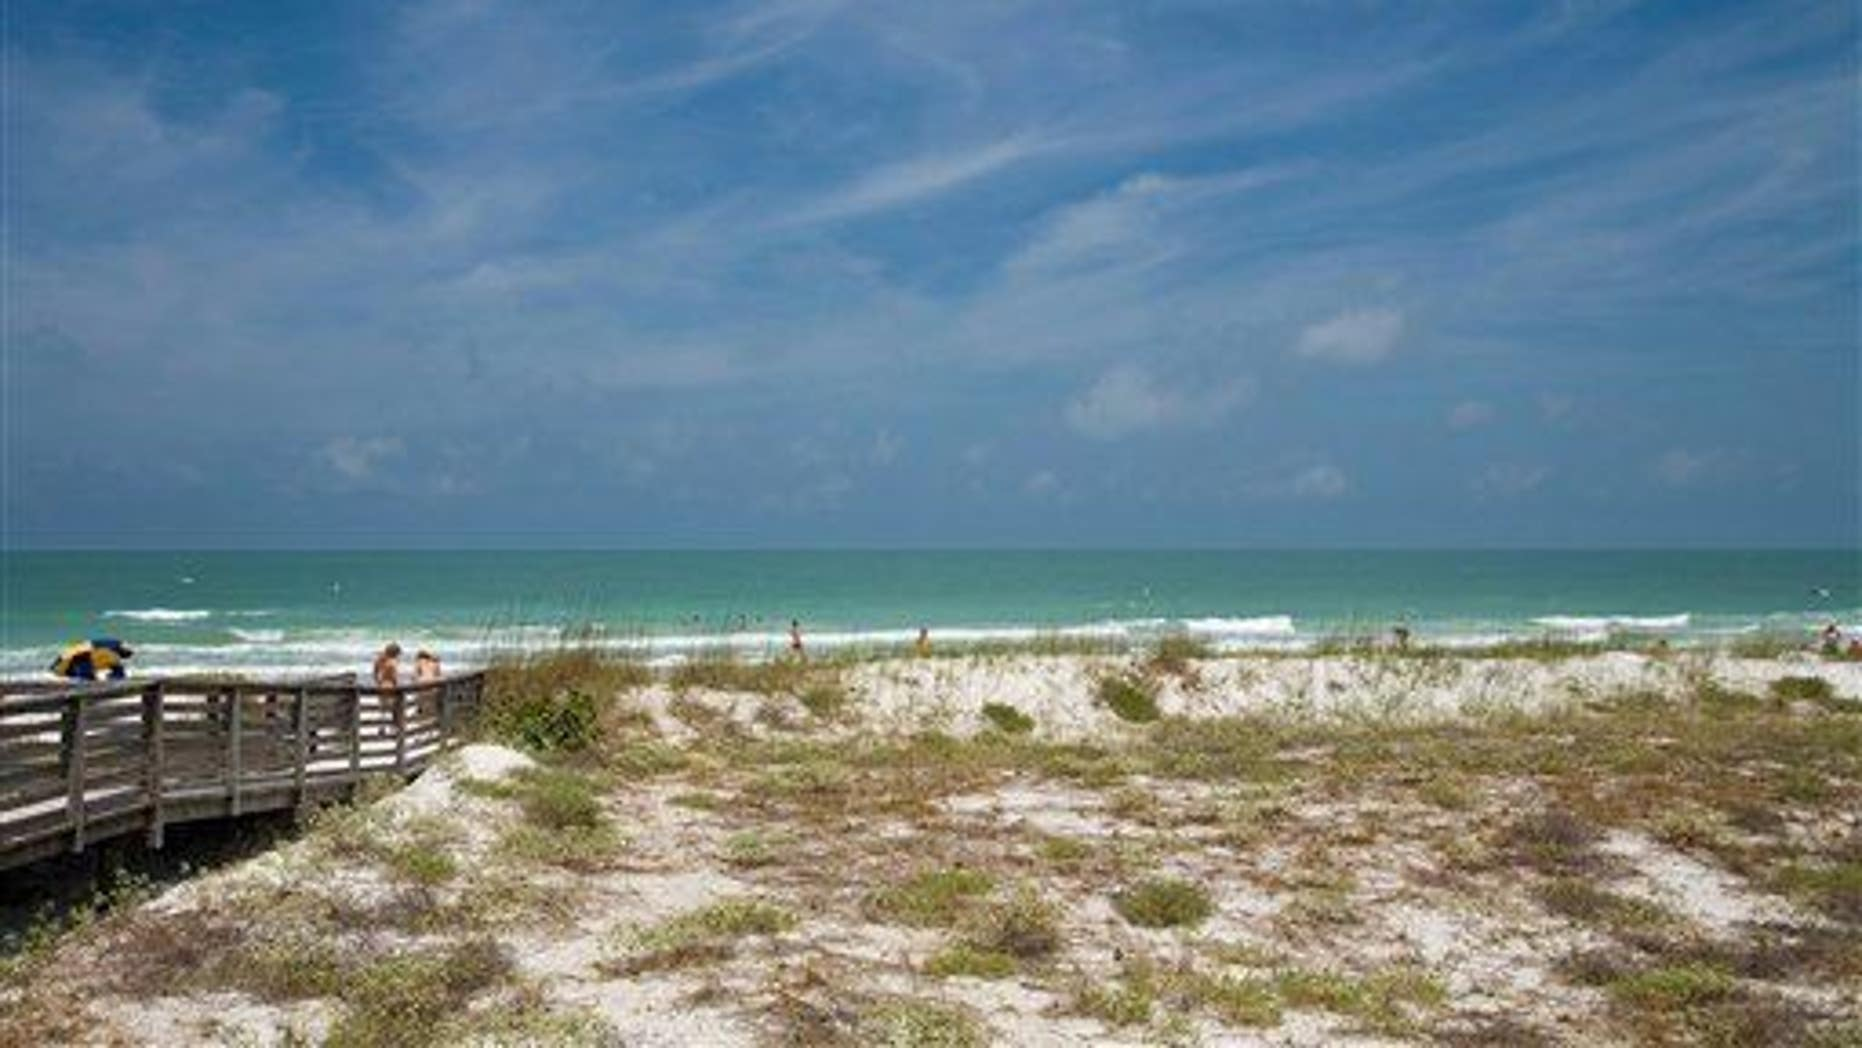 The Gulf of Mexico is shown in this photo.